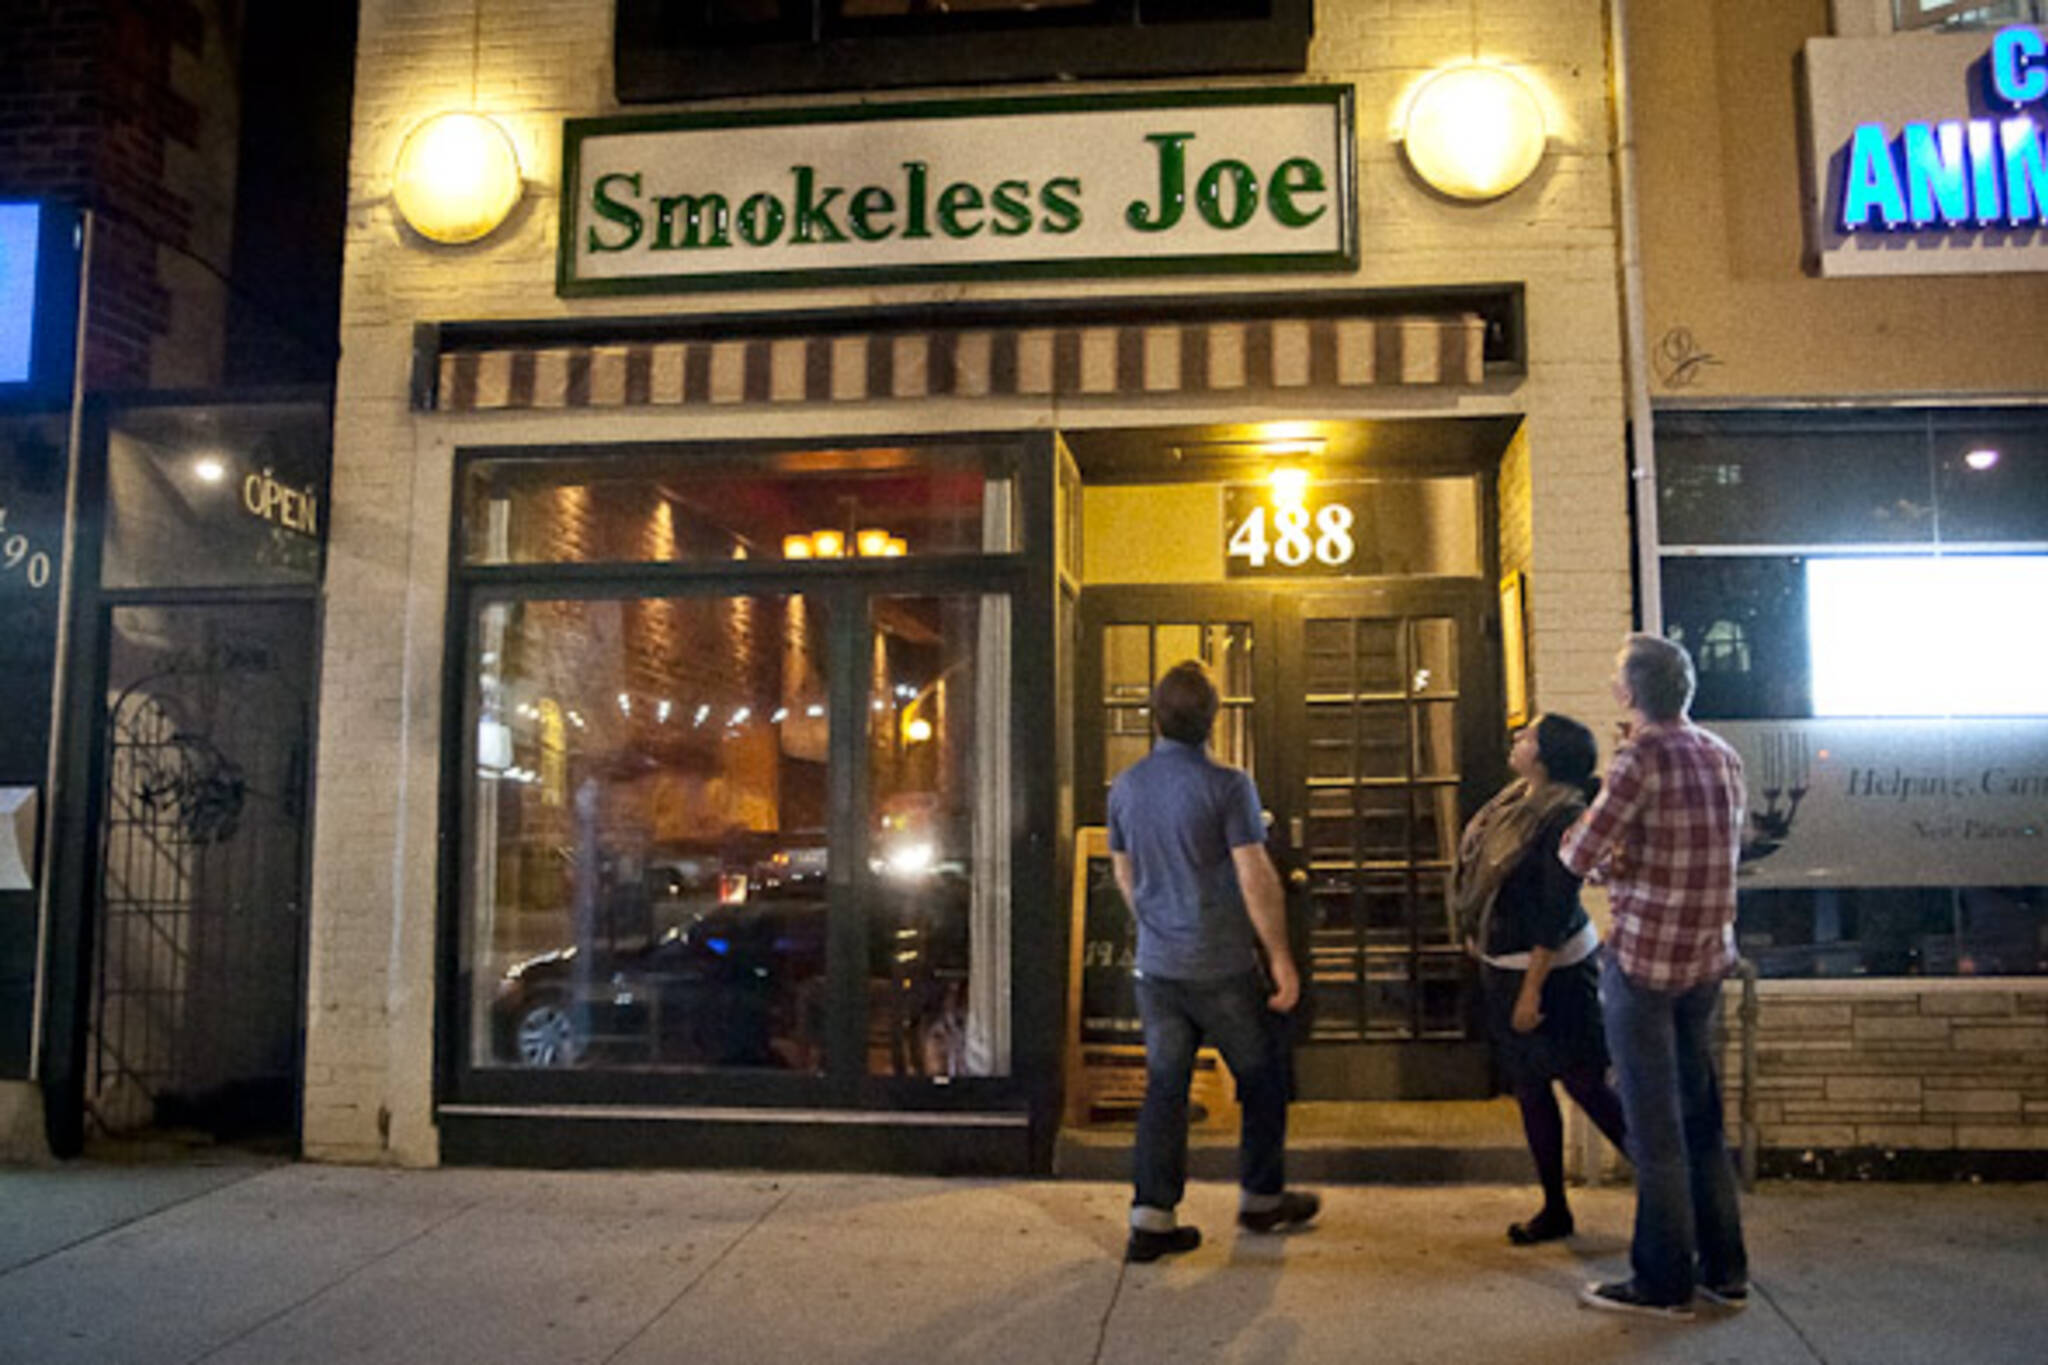 Smokeless Joe Toronto